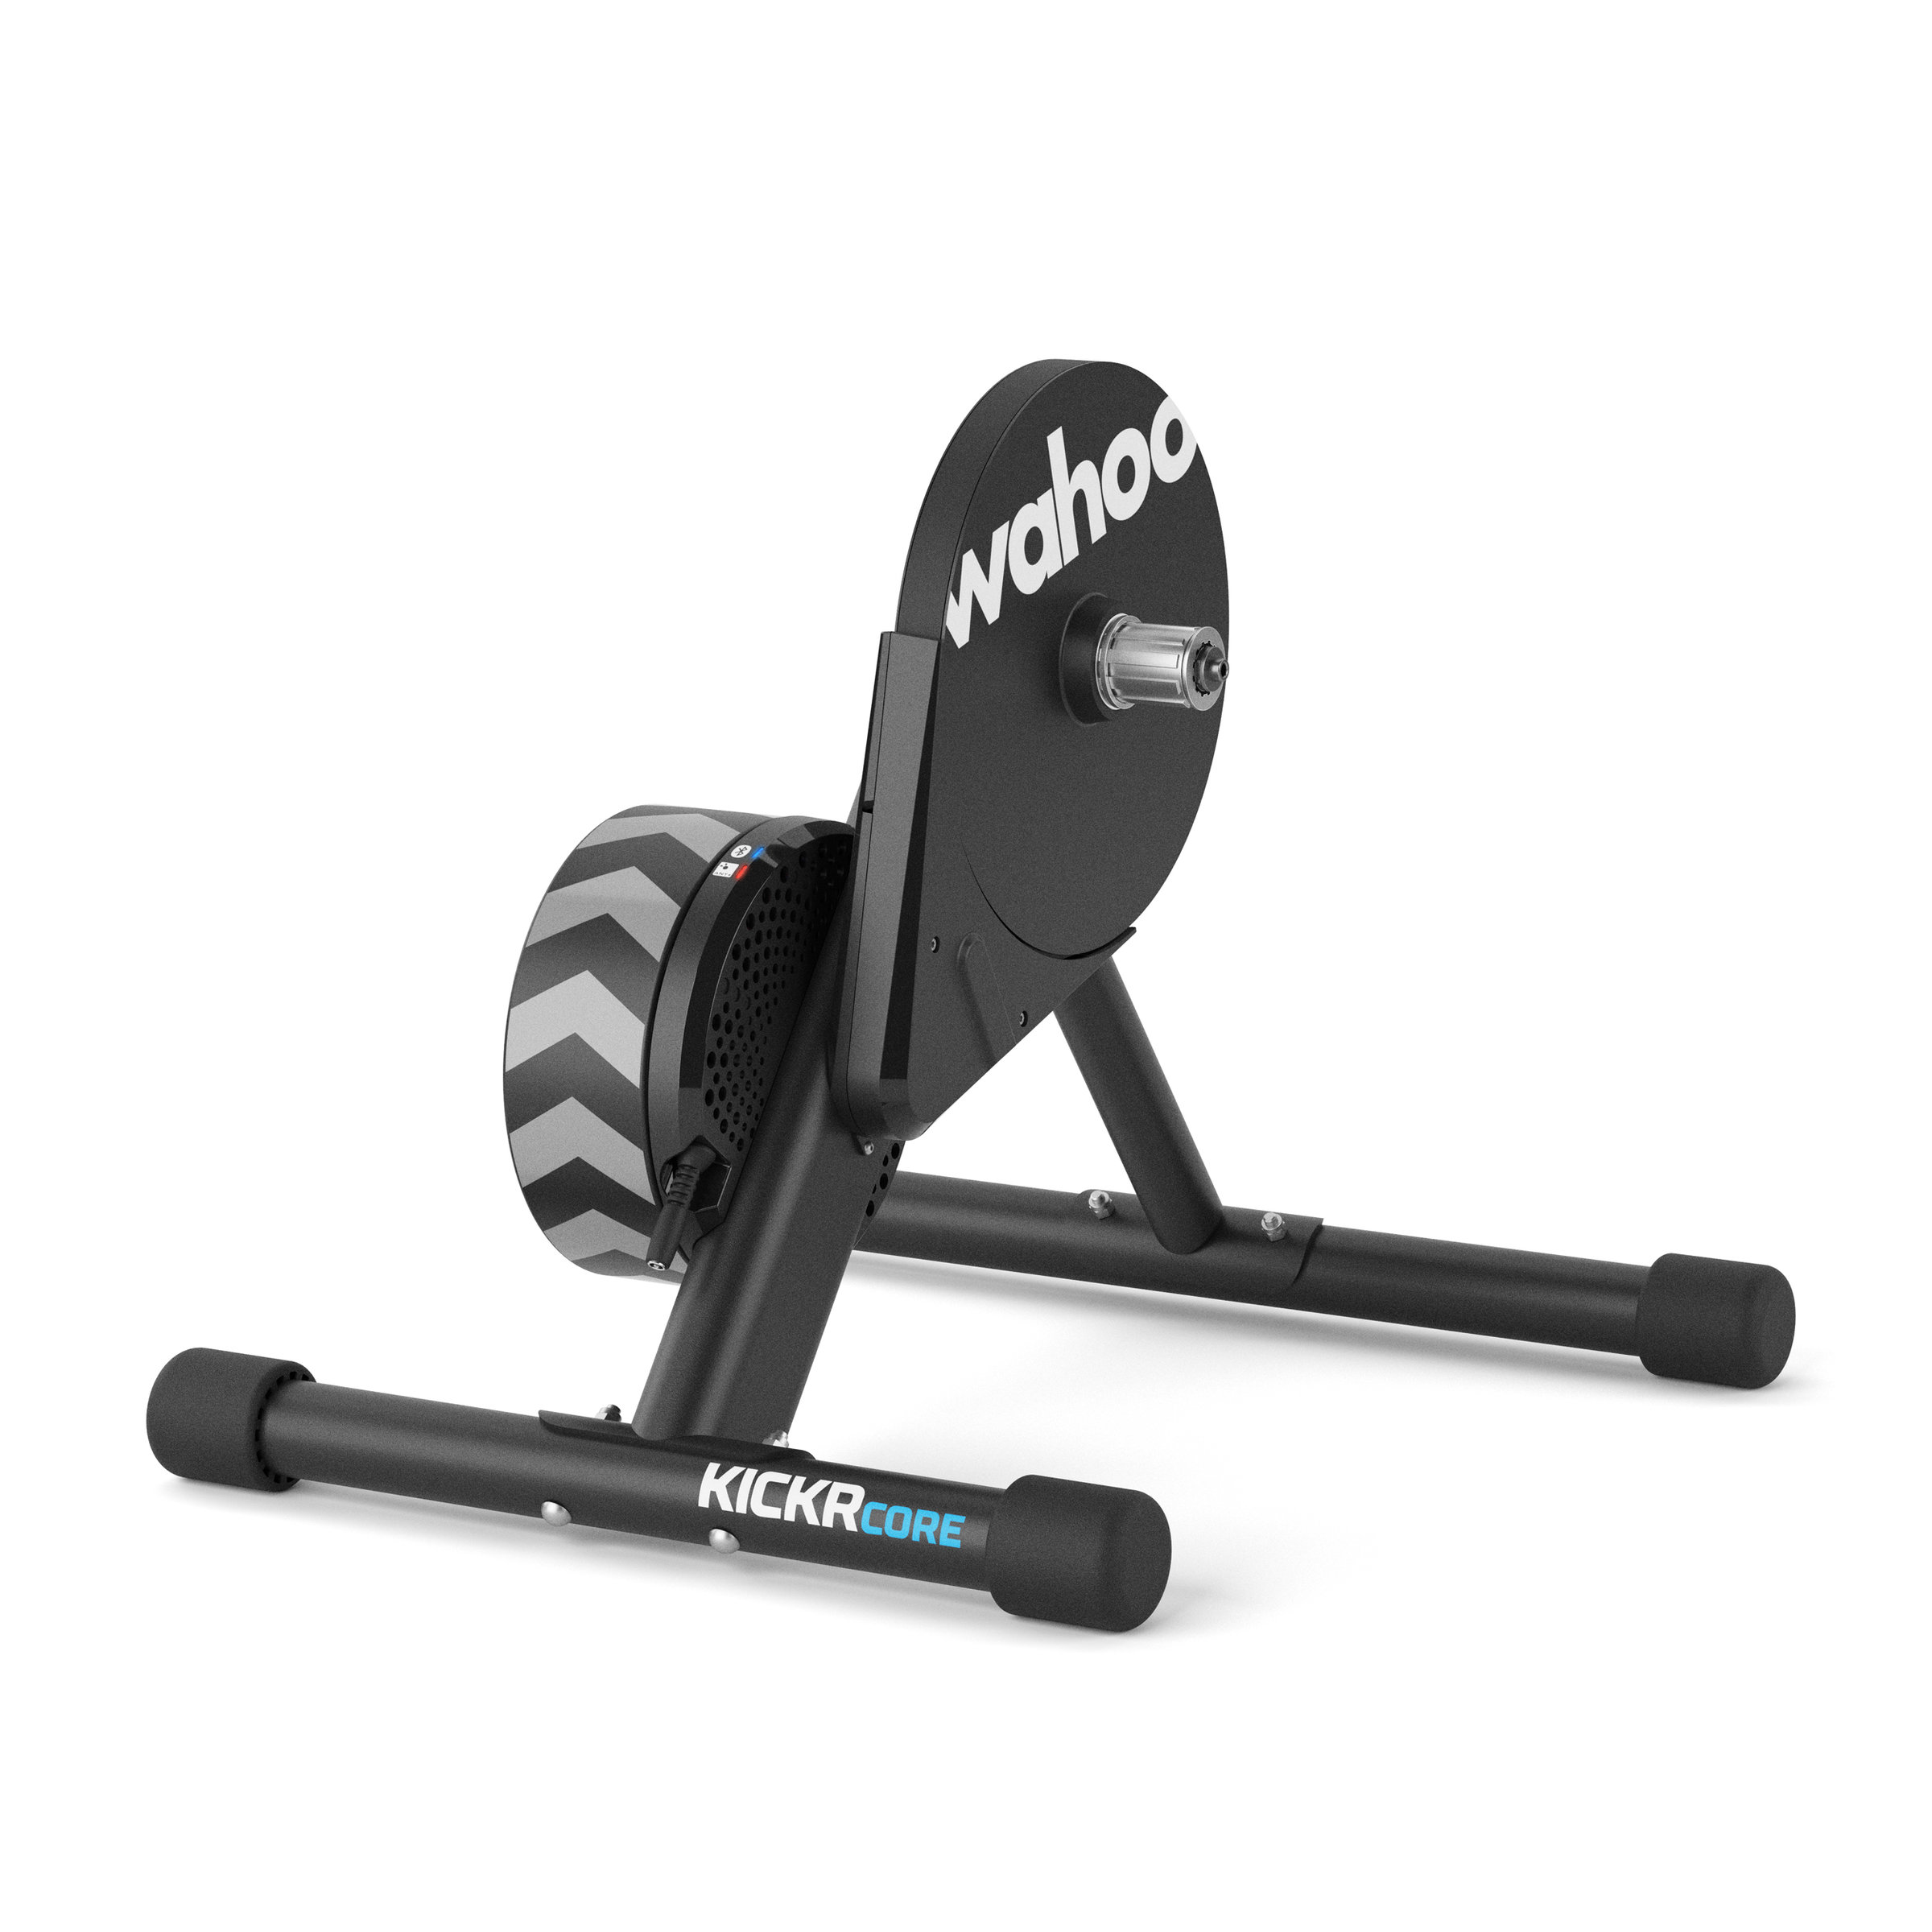 NEW KICKR CORE Smart Trainer